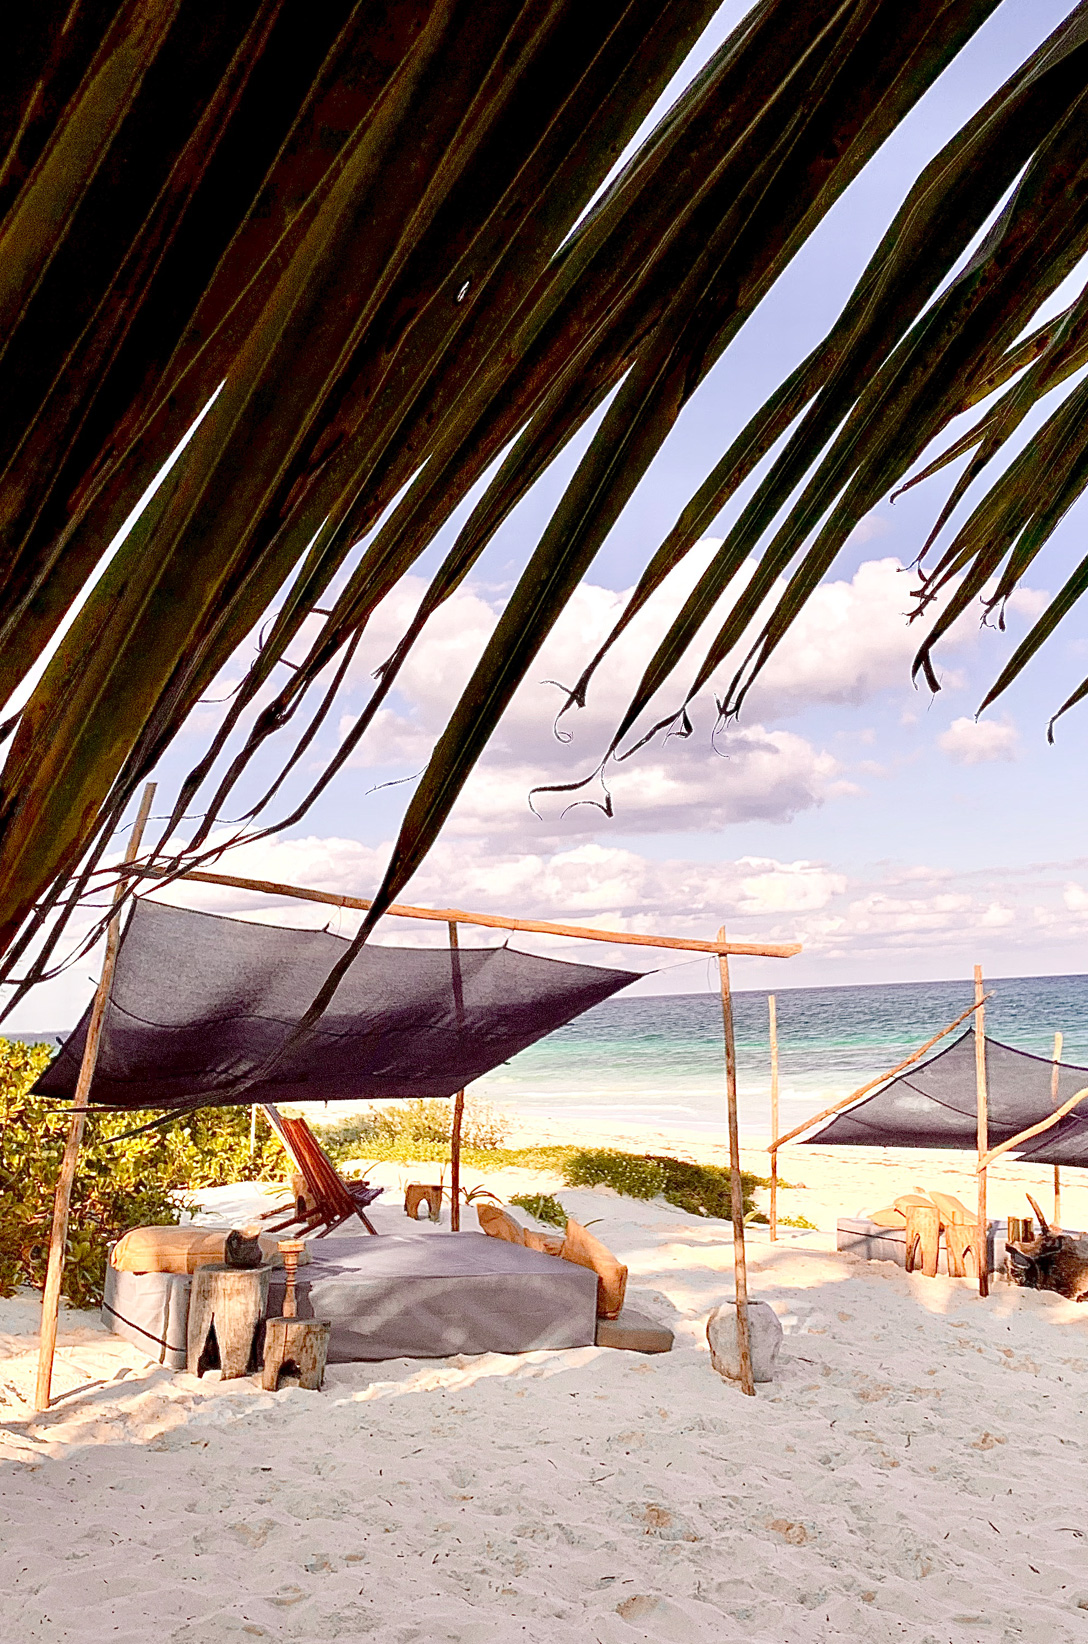 beach, club, tent, coach, pillows, wood, sea, sand, blue, turquoise, log, pitcher, water, tulum, libelula, glamping